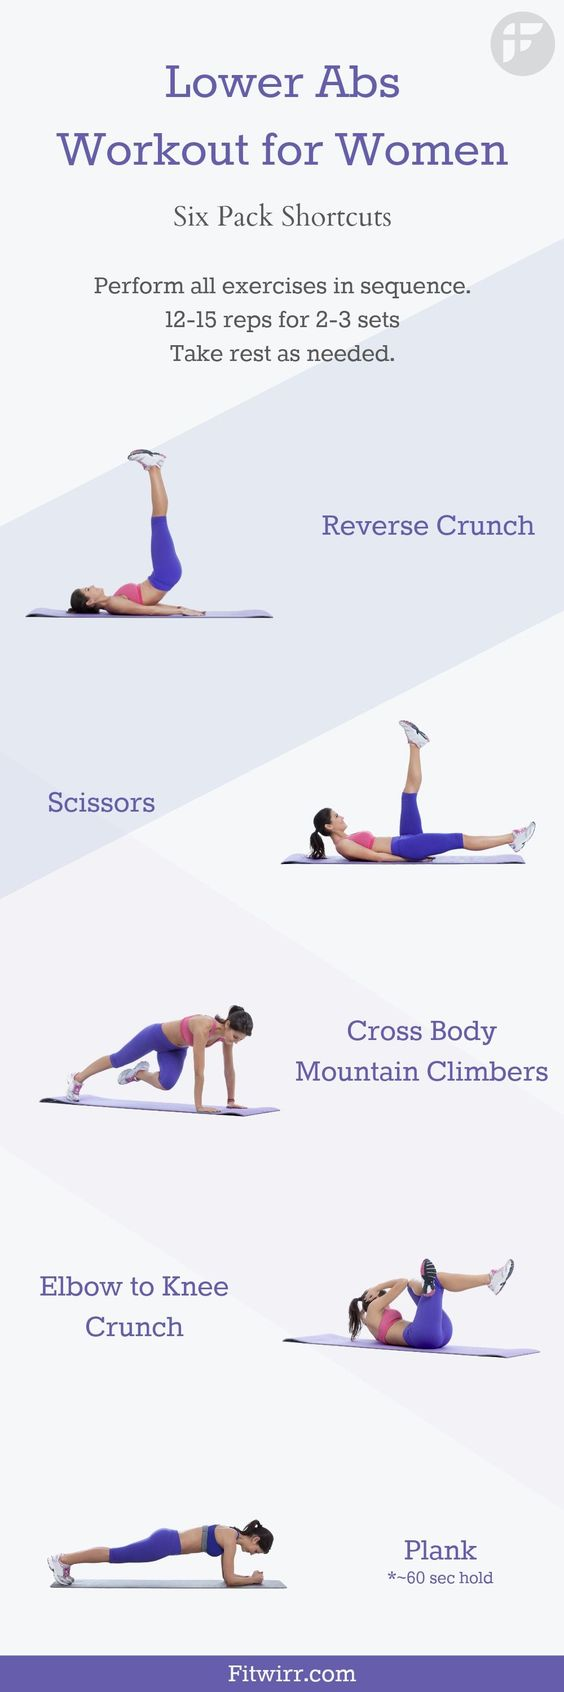 lower ab workouts 5 easy exercises to strengthen tight the core lower ab workouts lower. Black Bedroom Furniture Sets. Home Design Ideas